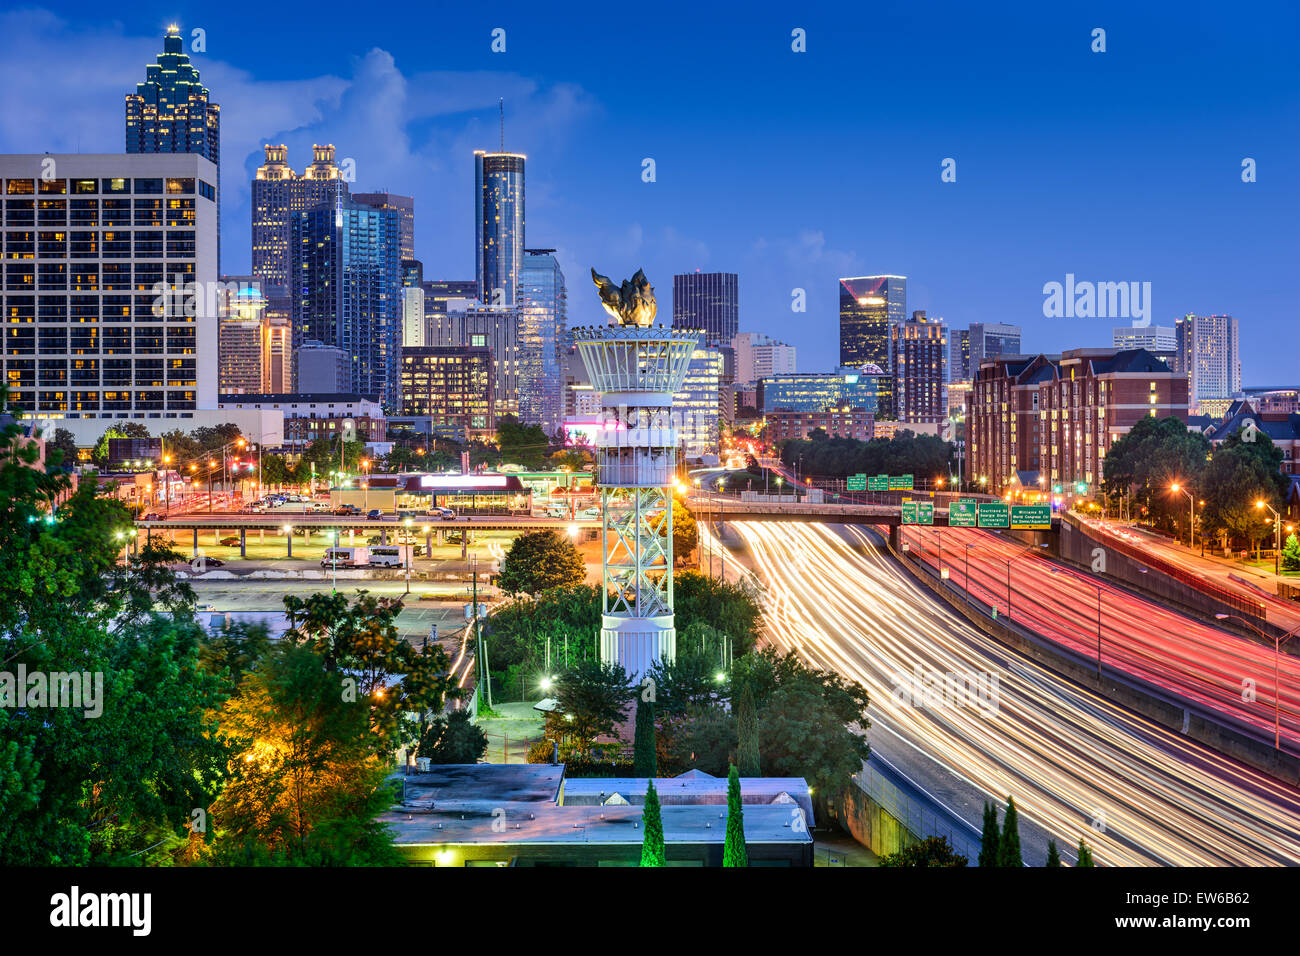 Atlanta, Georgia, USA downtown skyline over Interstate 85. - Stock Image